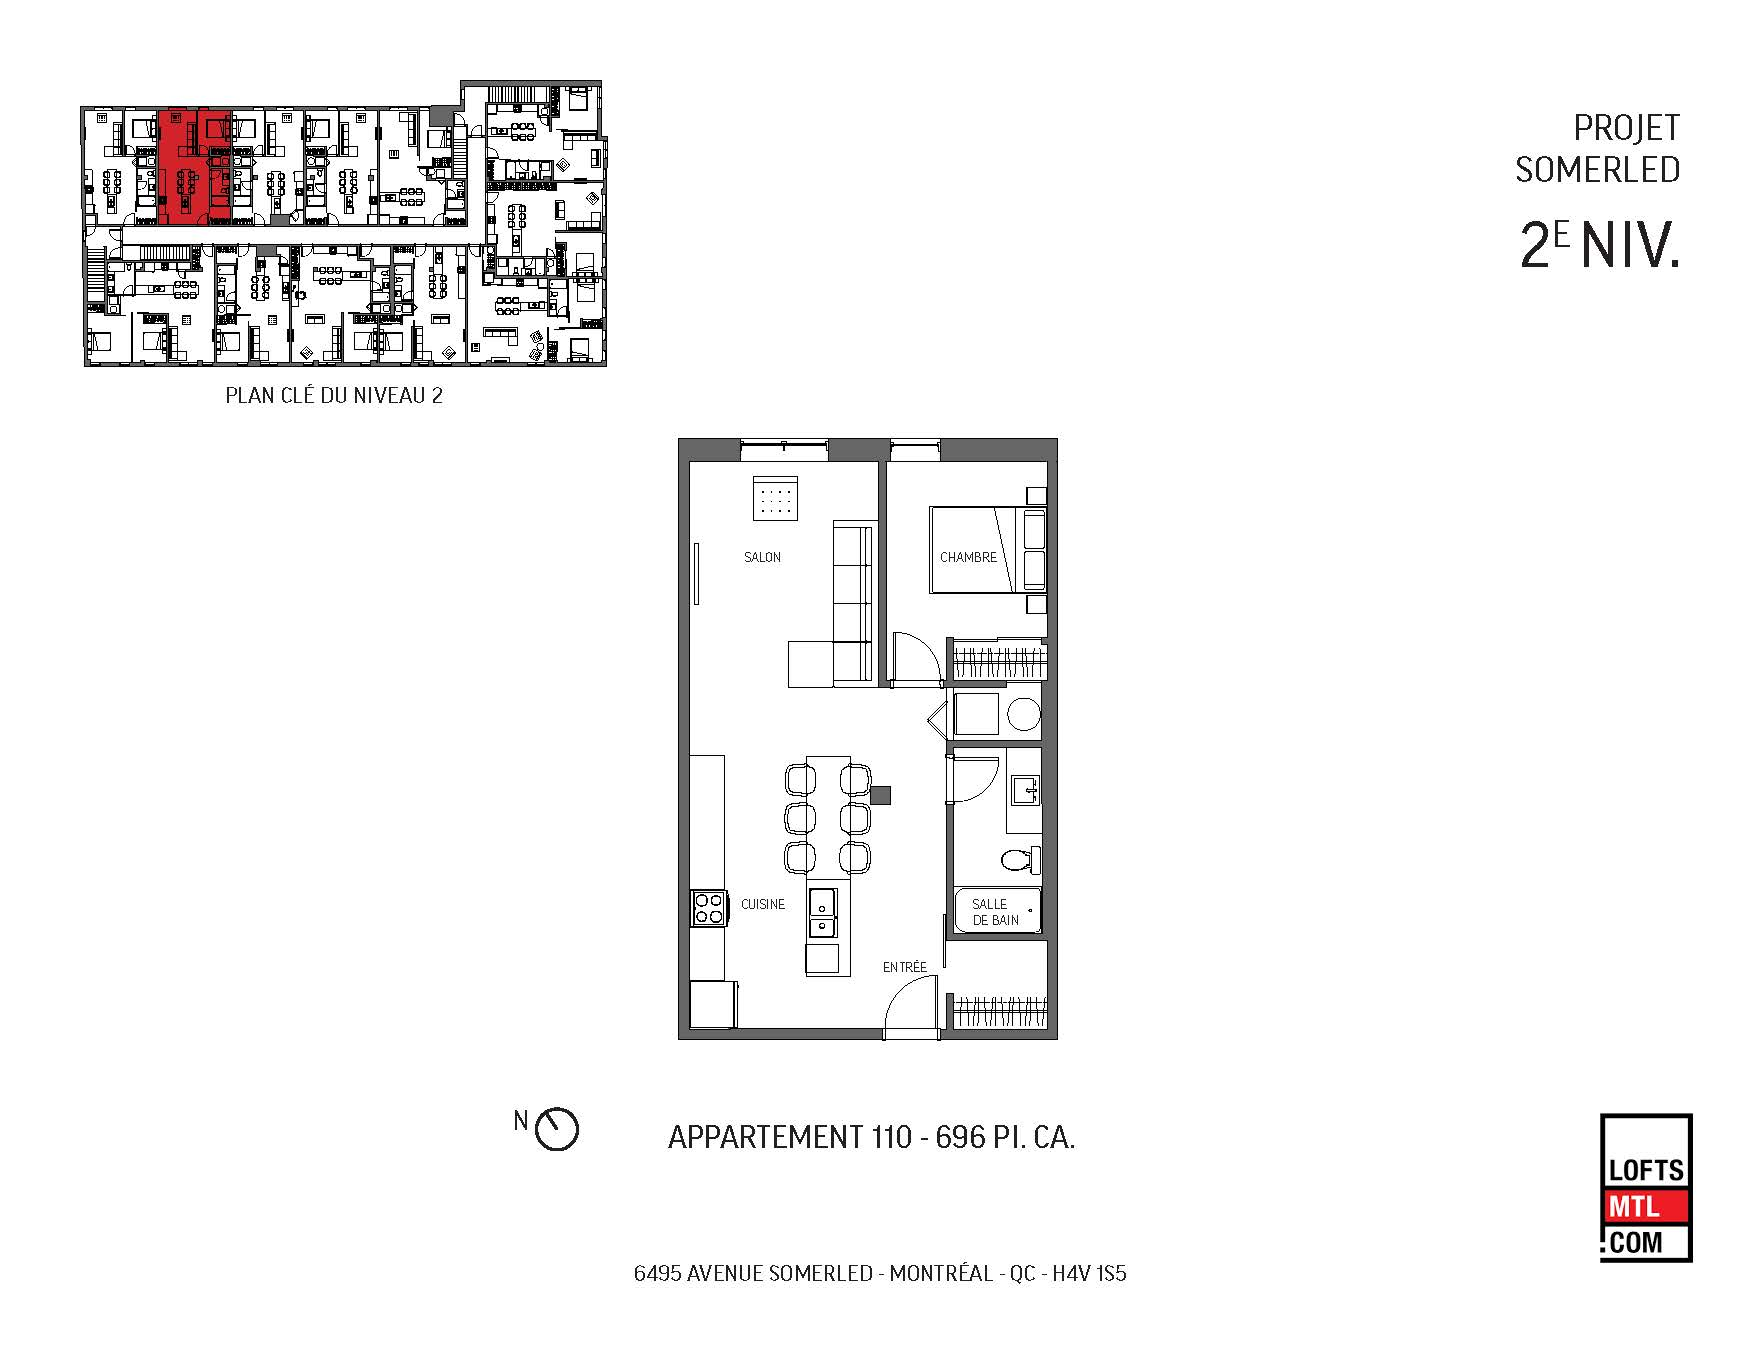 Plans appartements vectoriel Somerled_Page_10.jpg